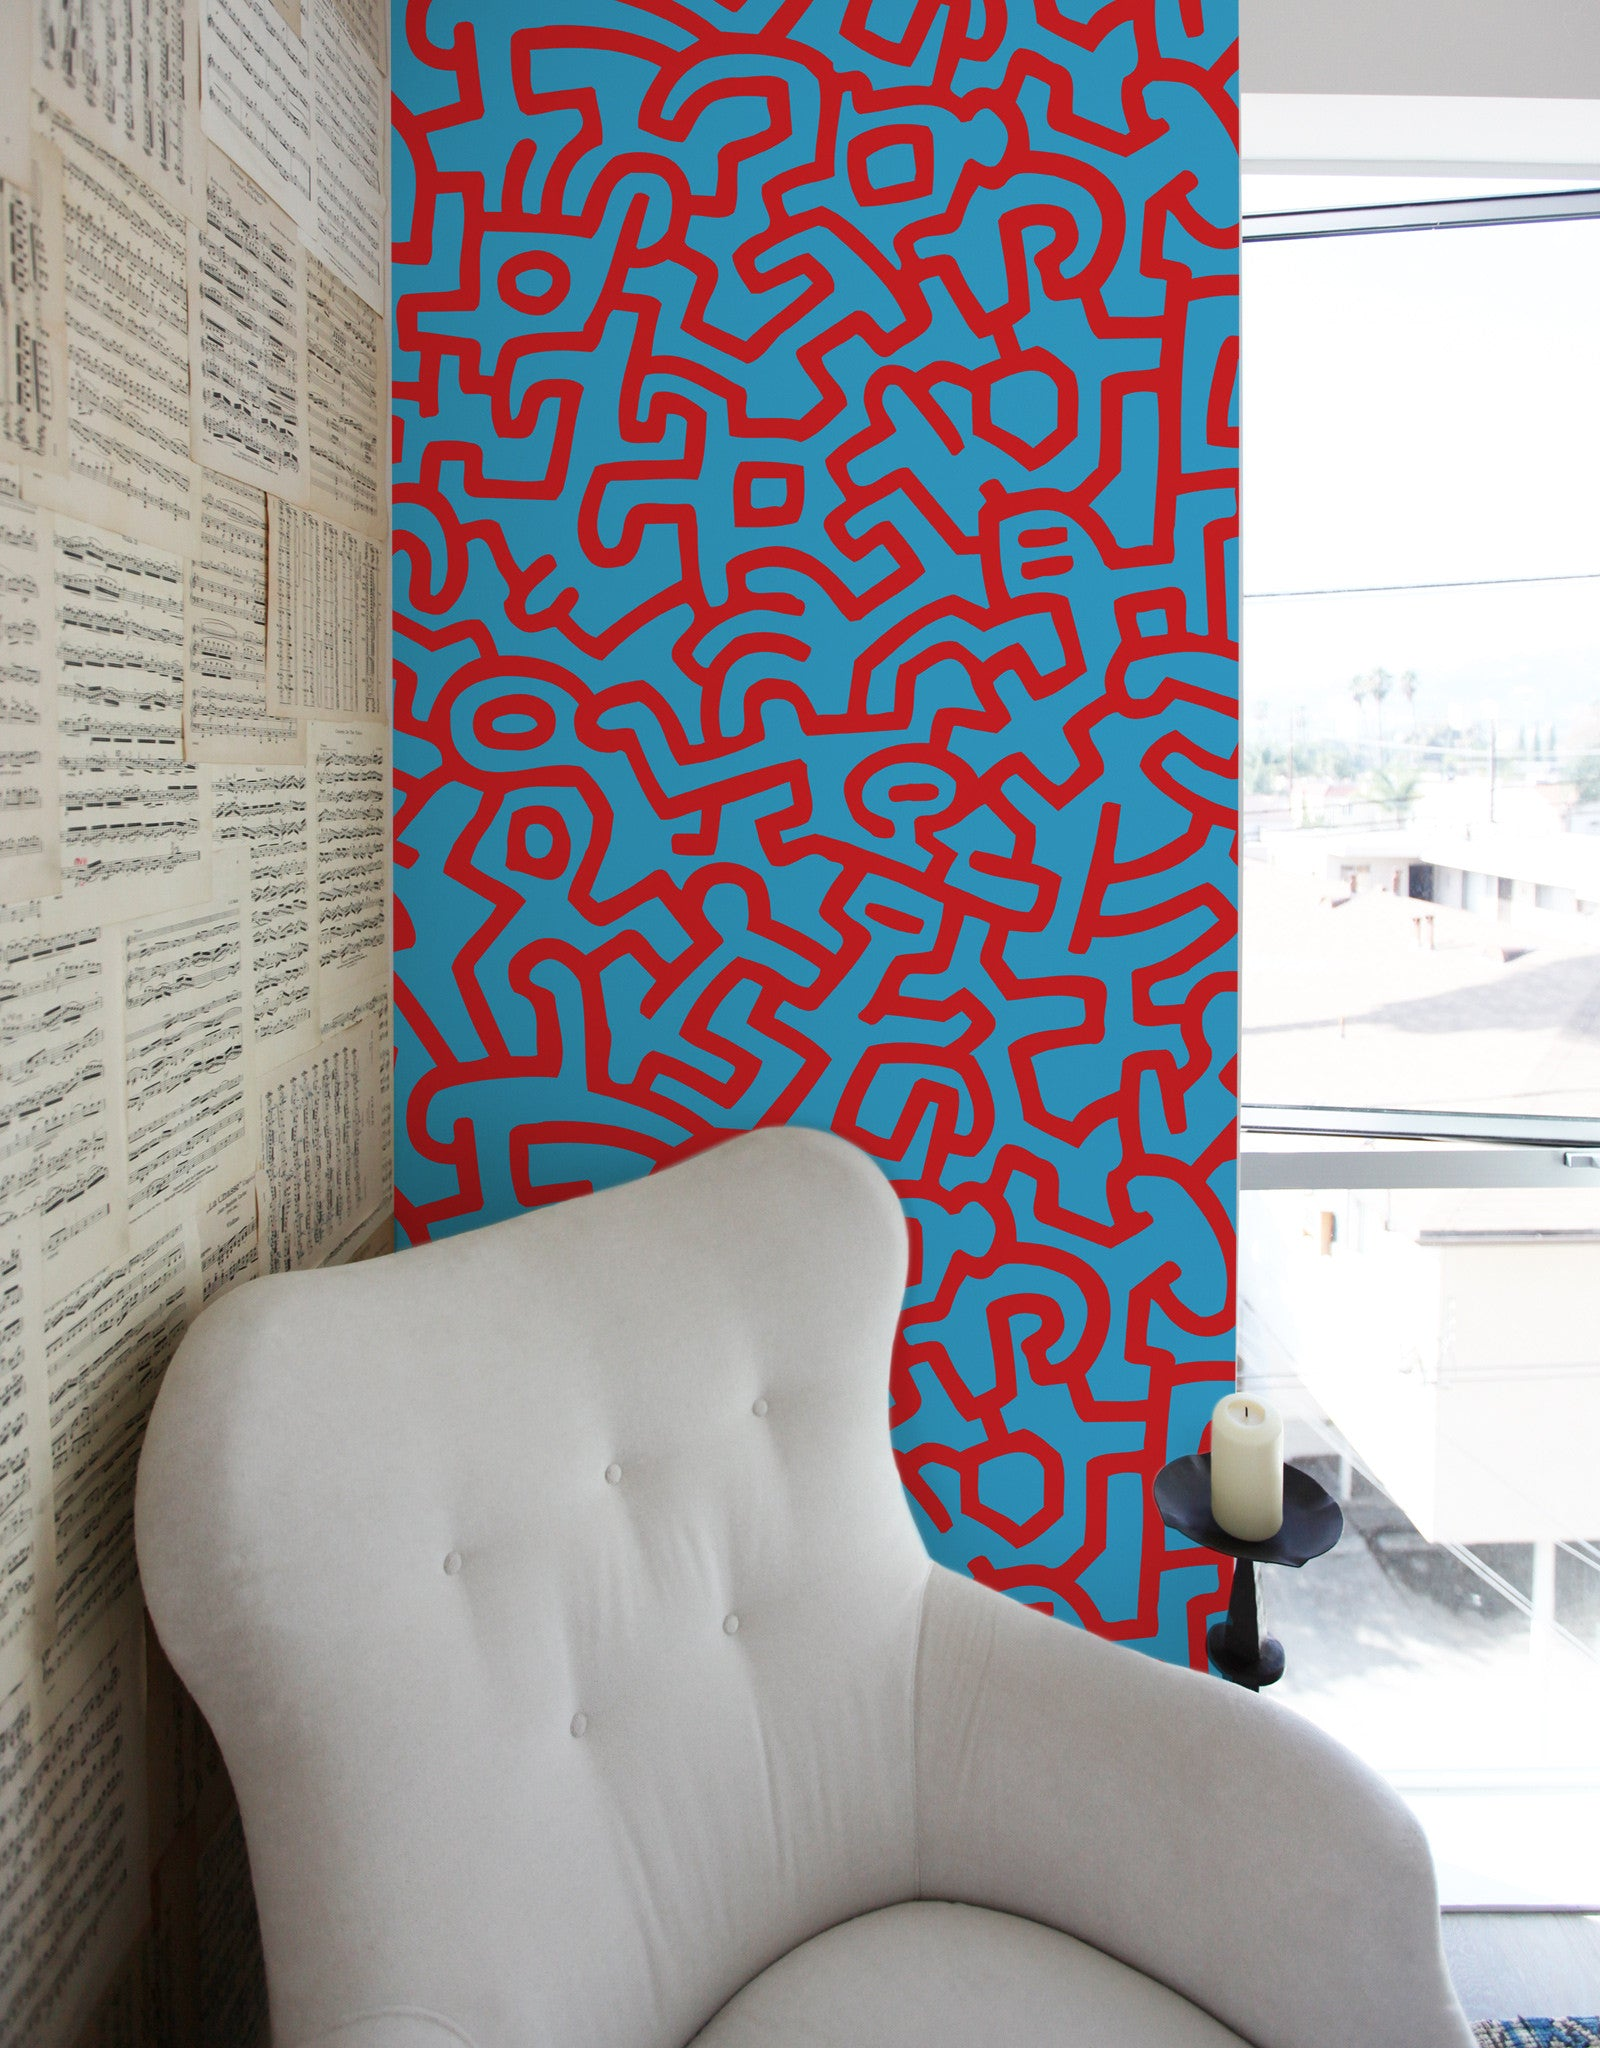 Keith Haring Adhesive Wall Tiles | Stick on Wall Tiles – Blik